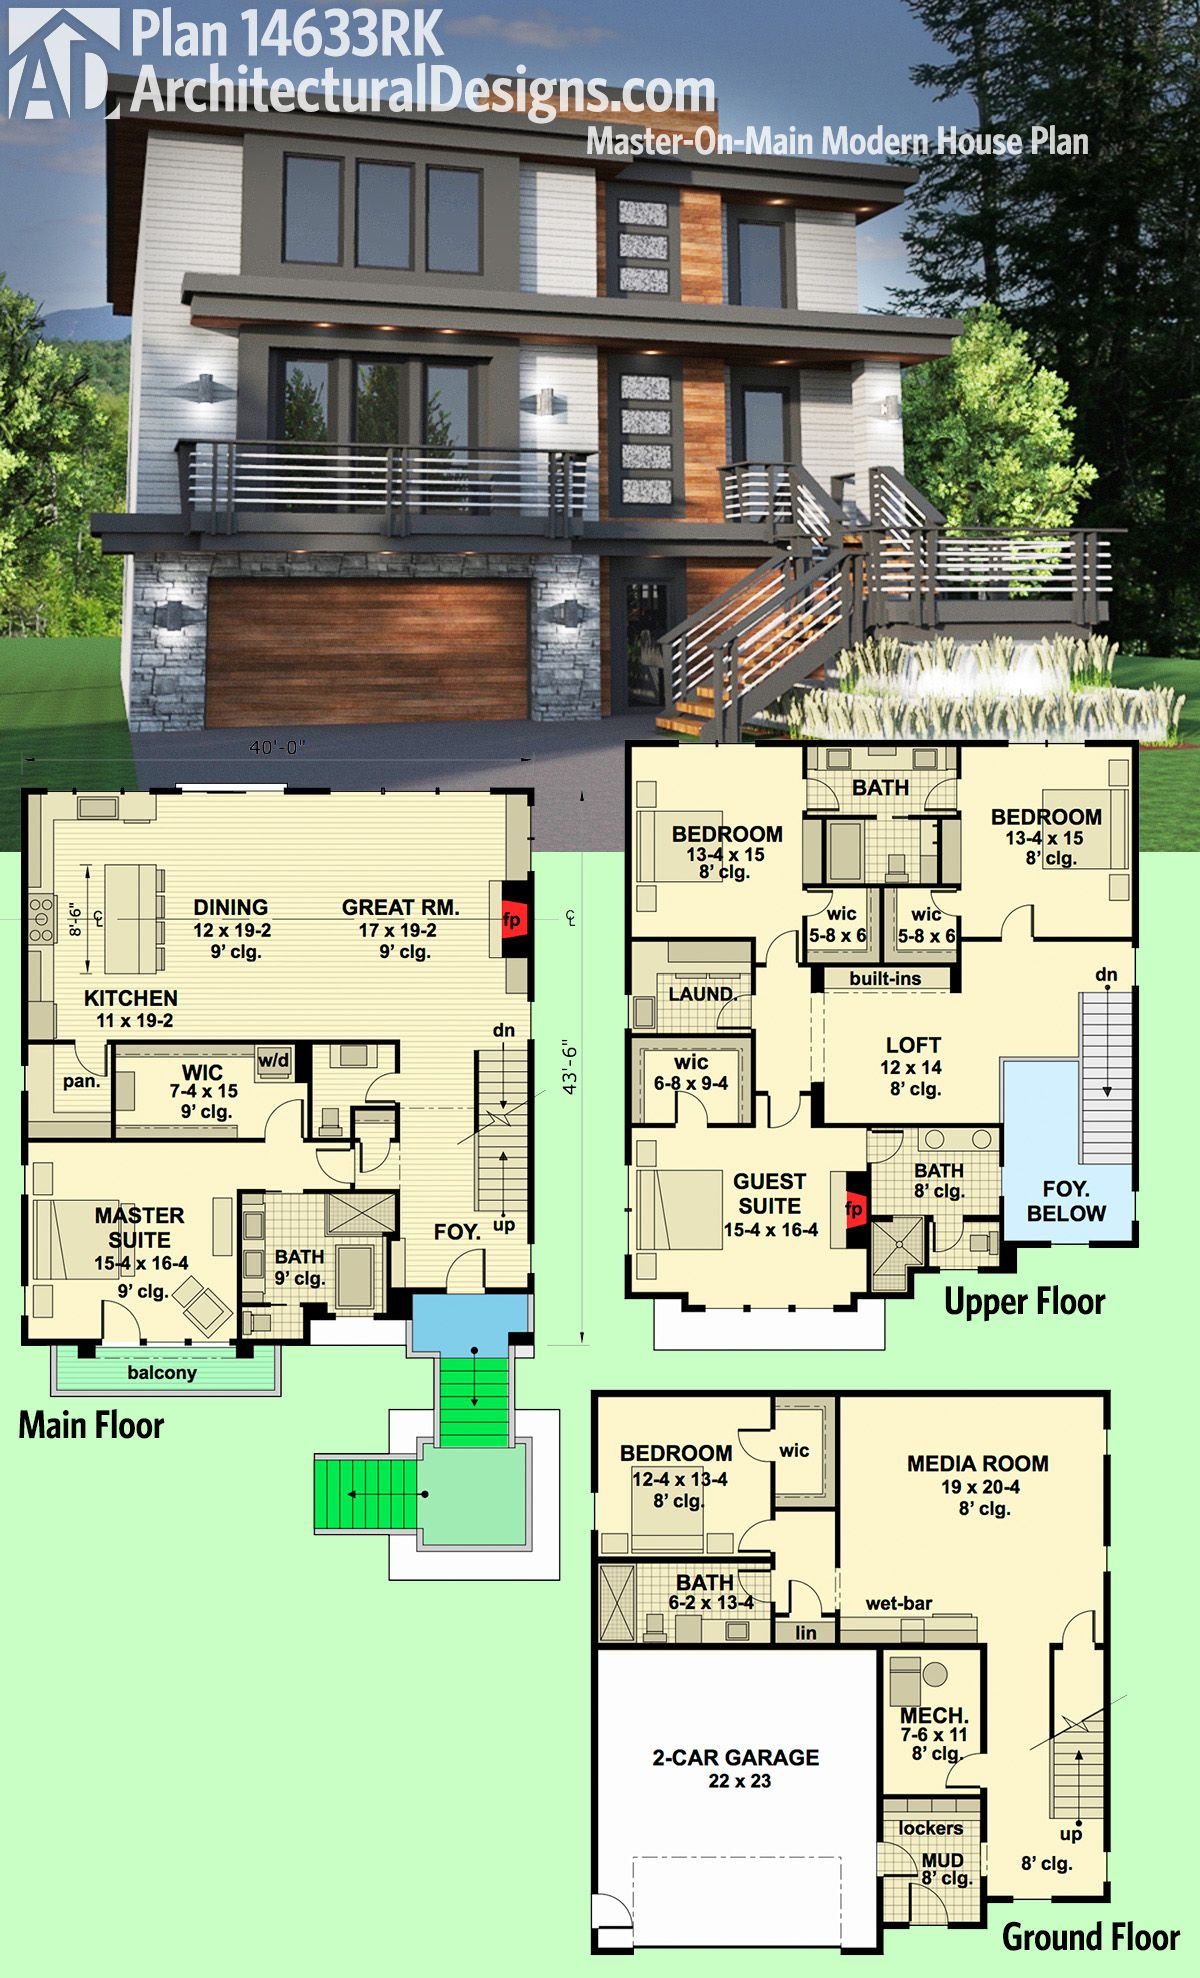 Plan 14633rk master on main modern house plan modern for Ready built homes floor plans